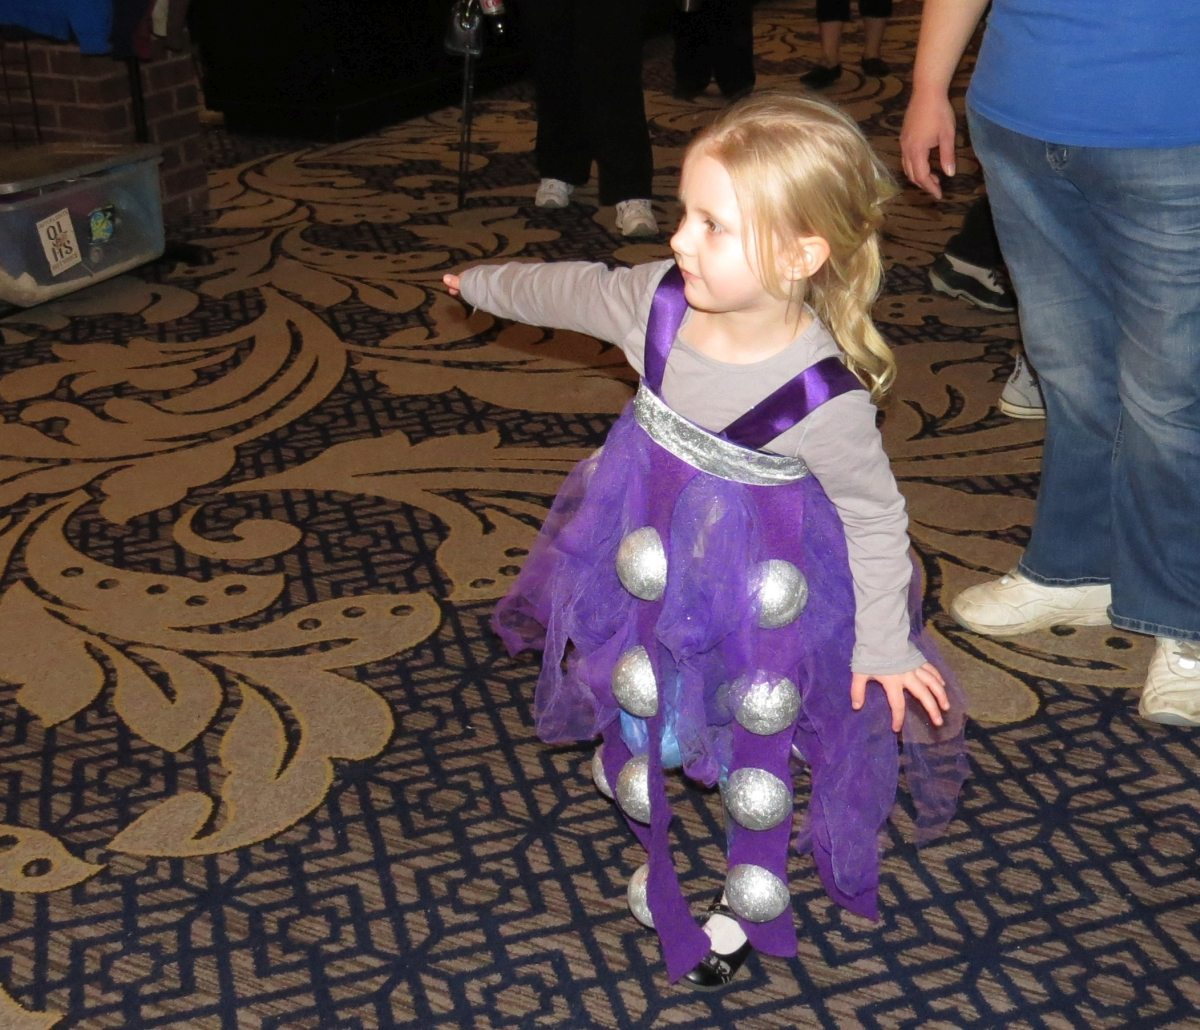 (Re)Generation Who - This little girl was quite possibly the cutest Dalek I've ever encountered.